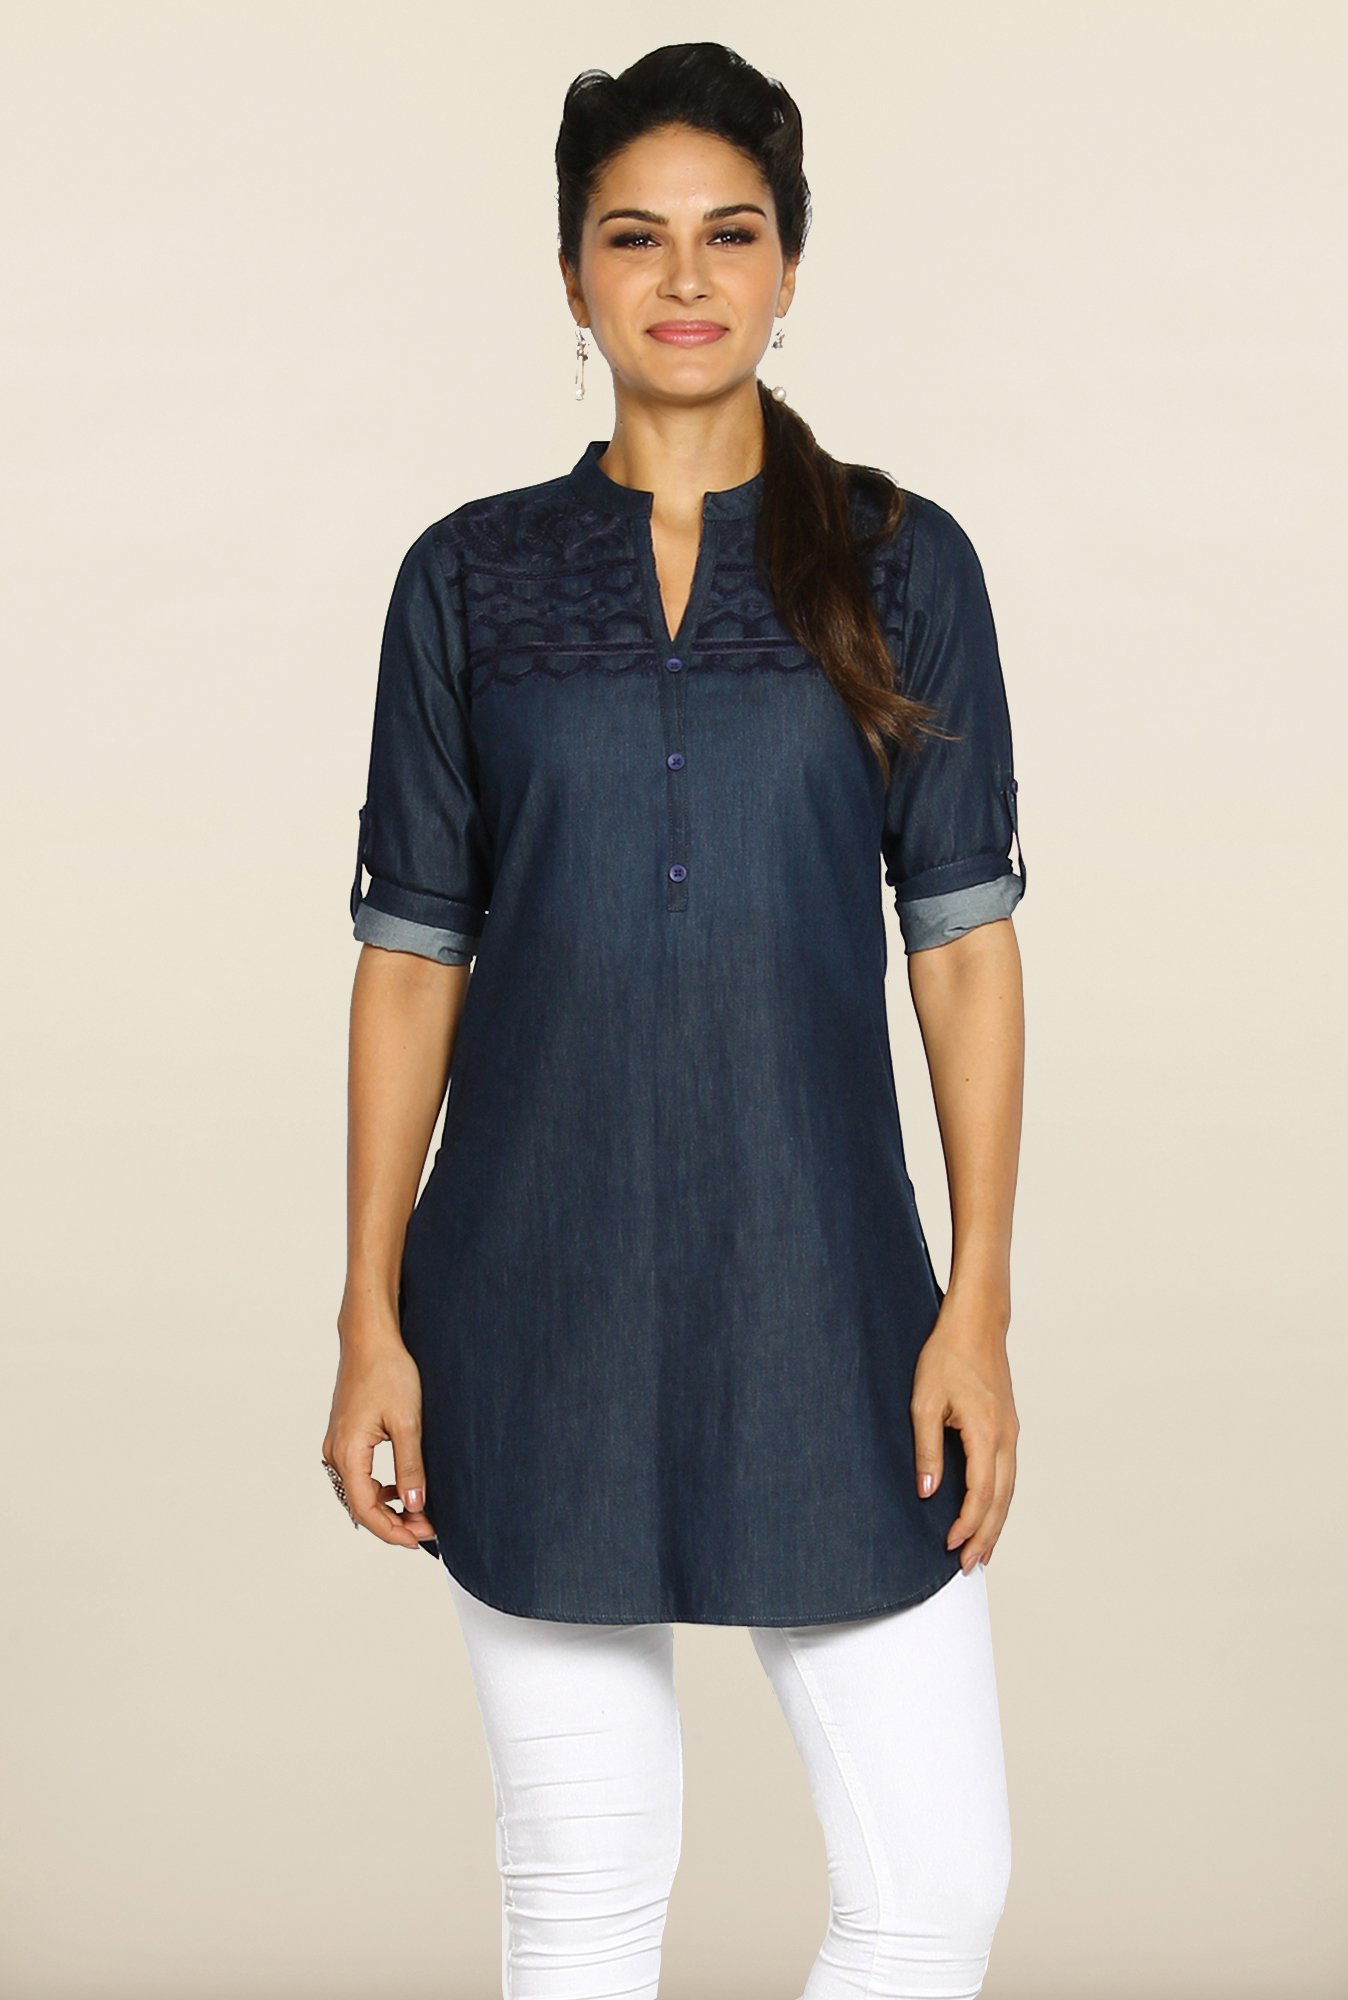 Soch Indigo Denim Tunic